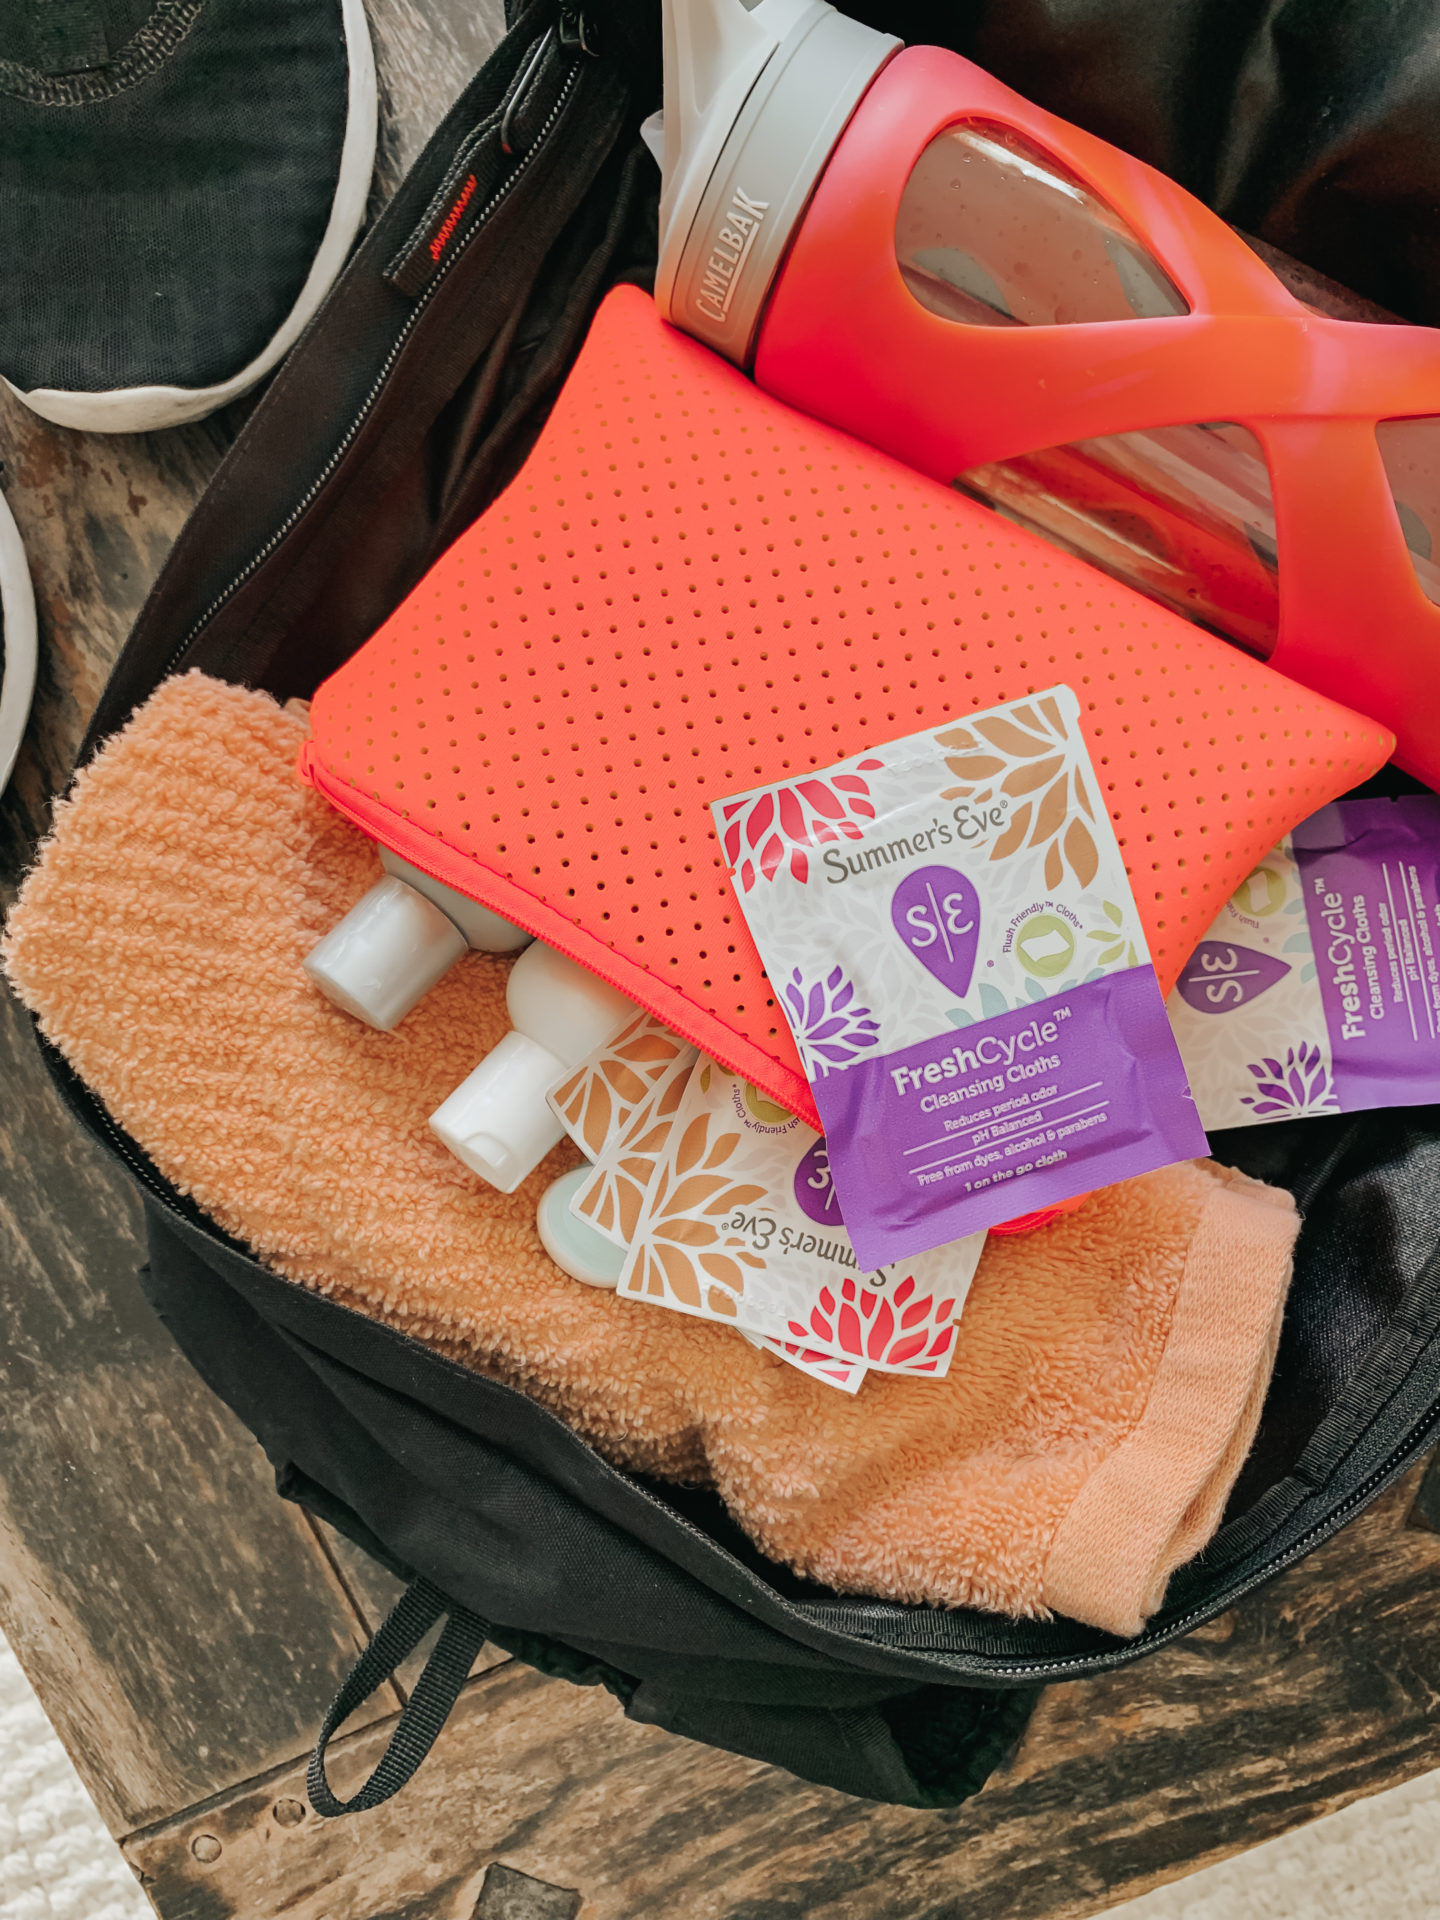 Summers Eve FreshCycle Cleansing Cloths in individual wrappers!